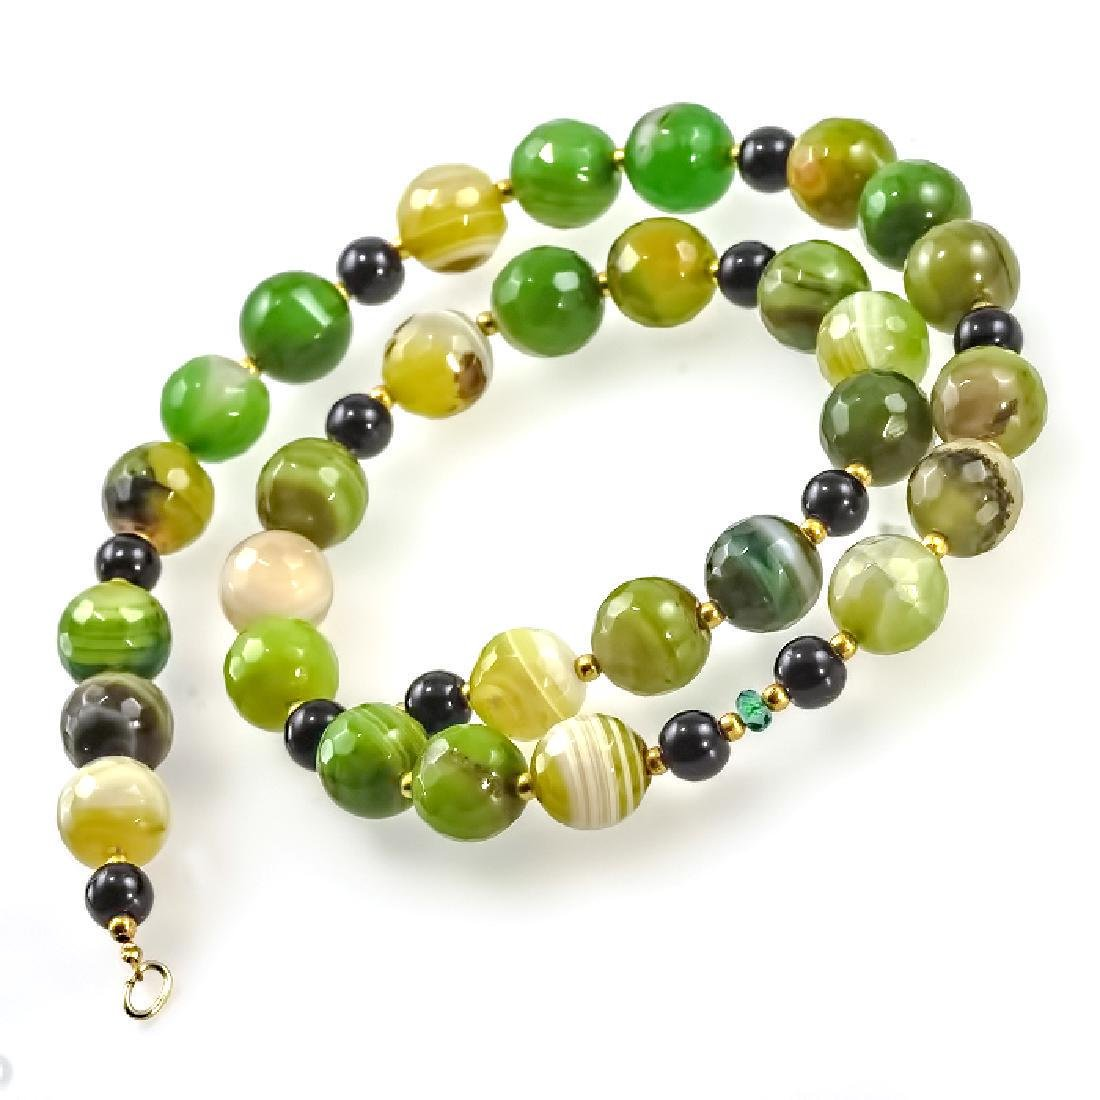 Green and Black Necklace with Emerald